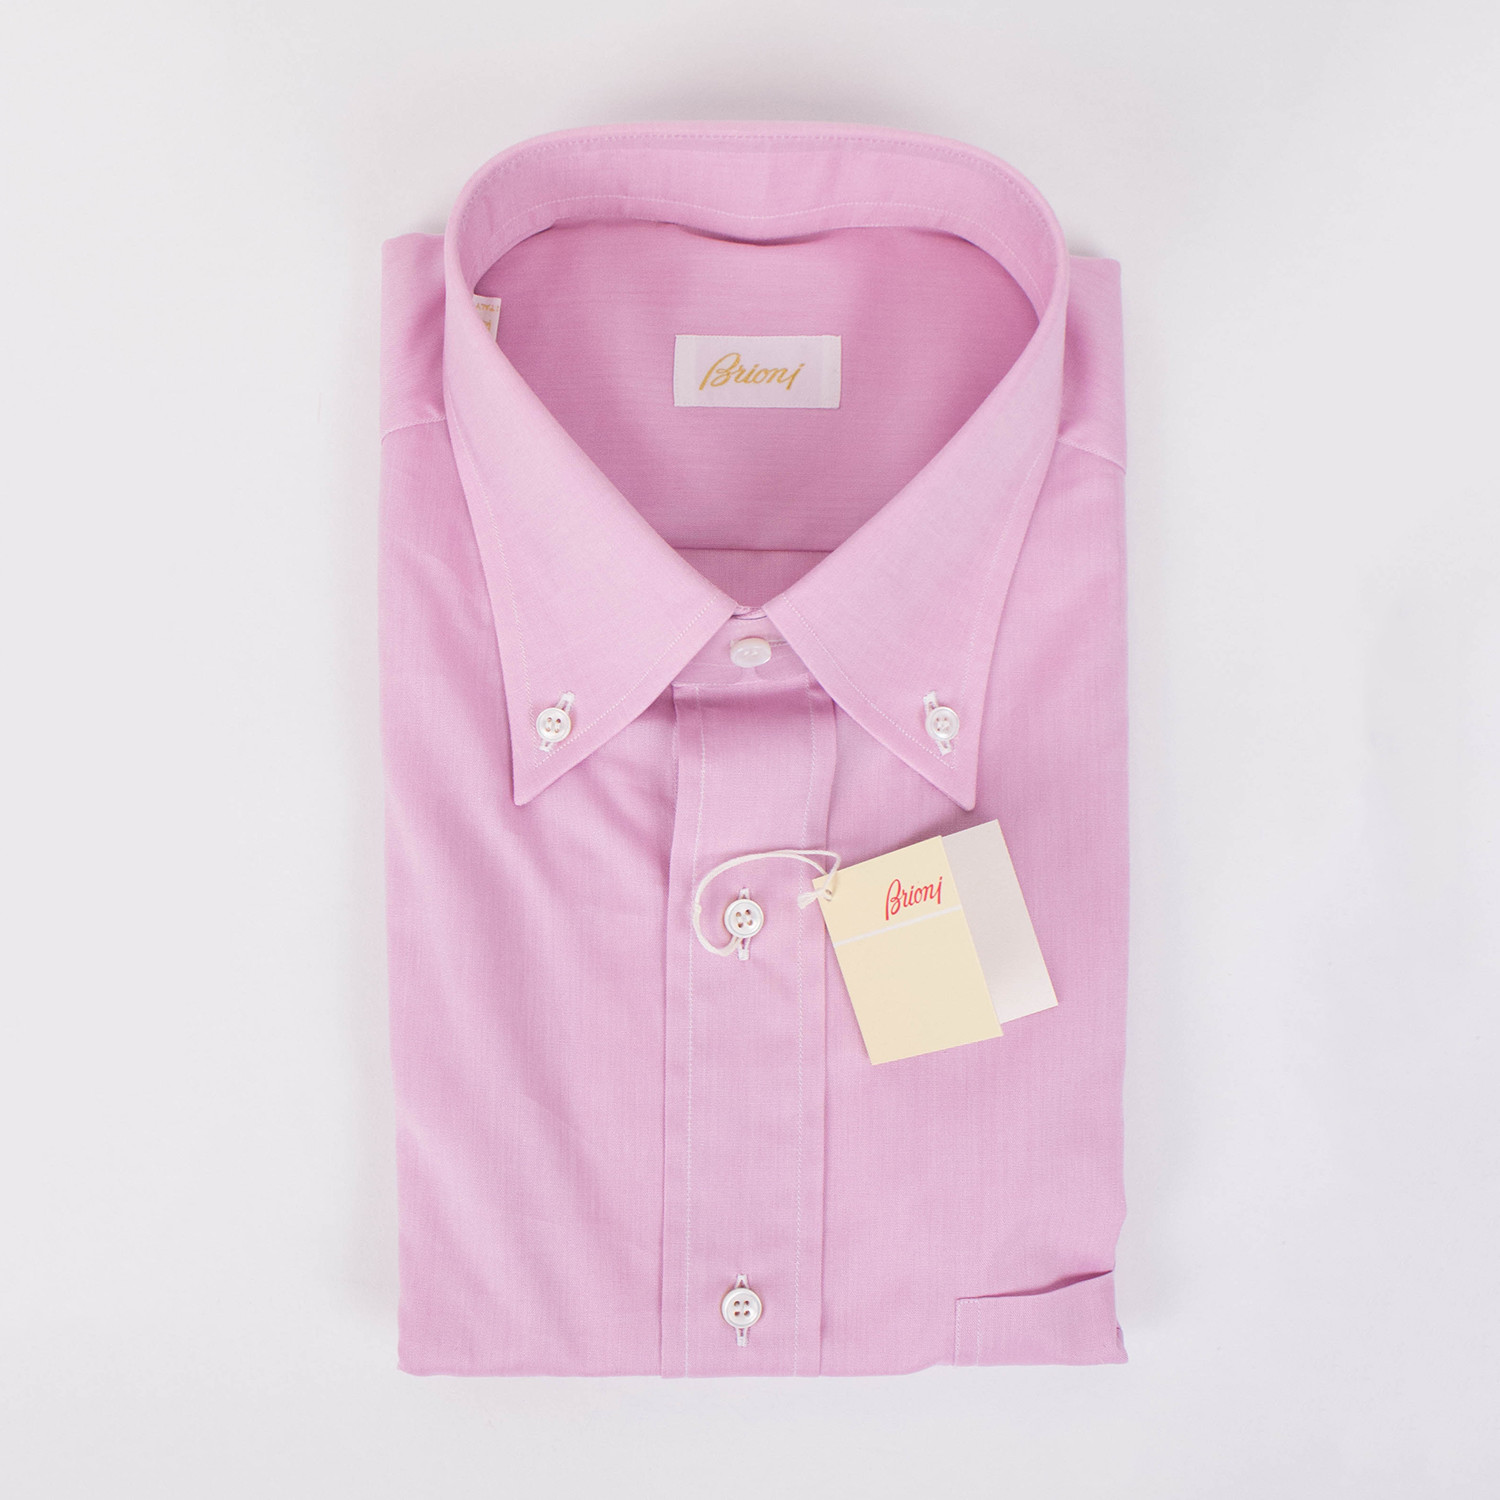 7c00f46e1 Mens Cotton Short Sleeve Dress Shirts | Huston Fislar Photography